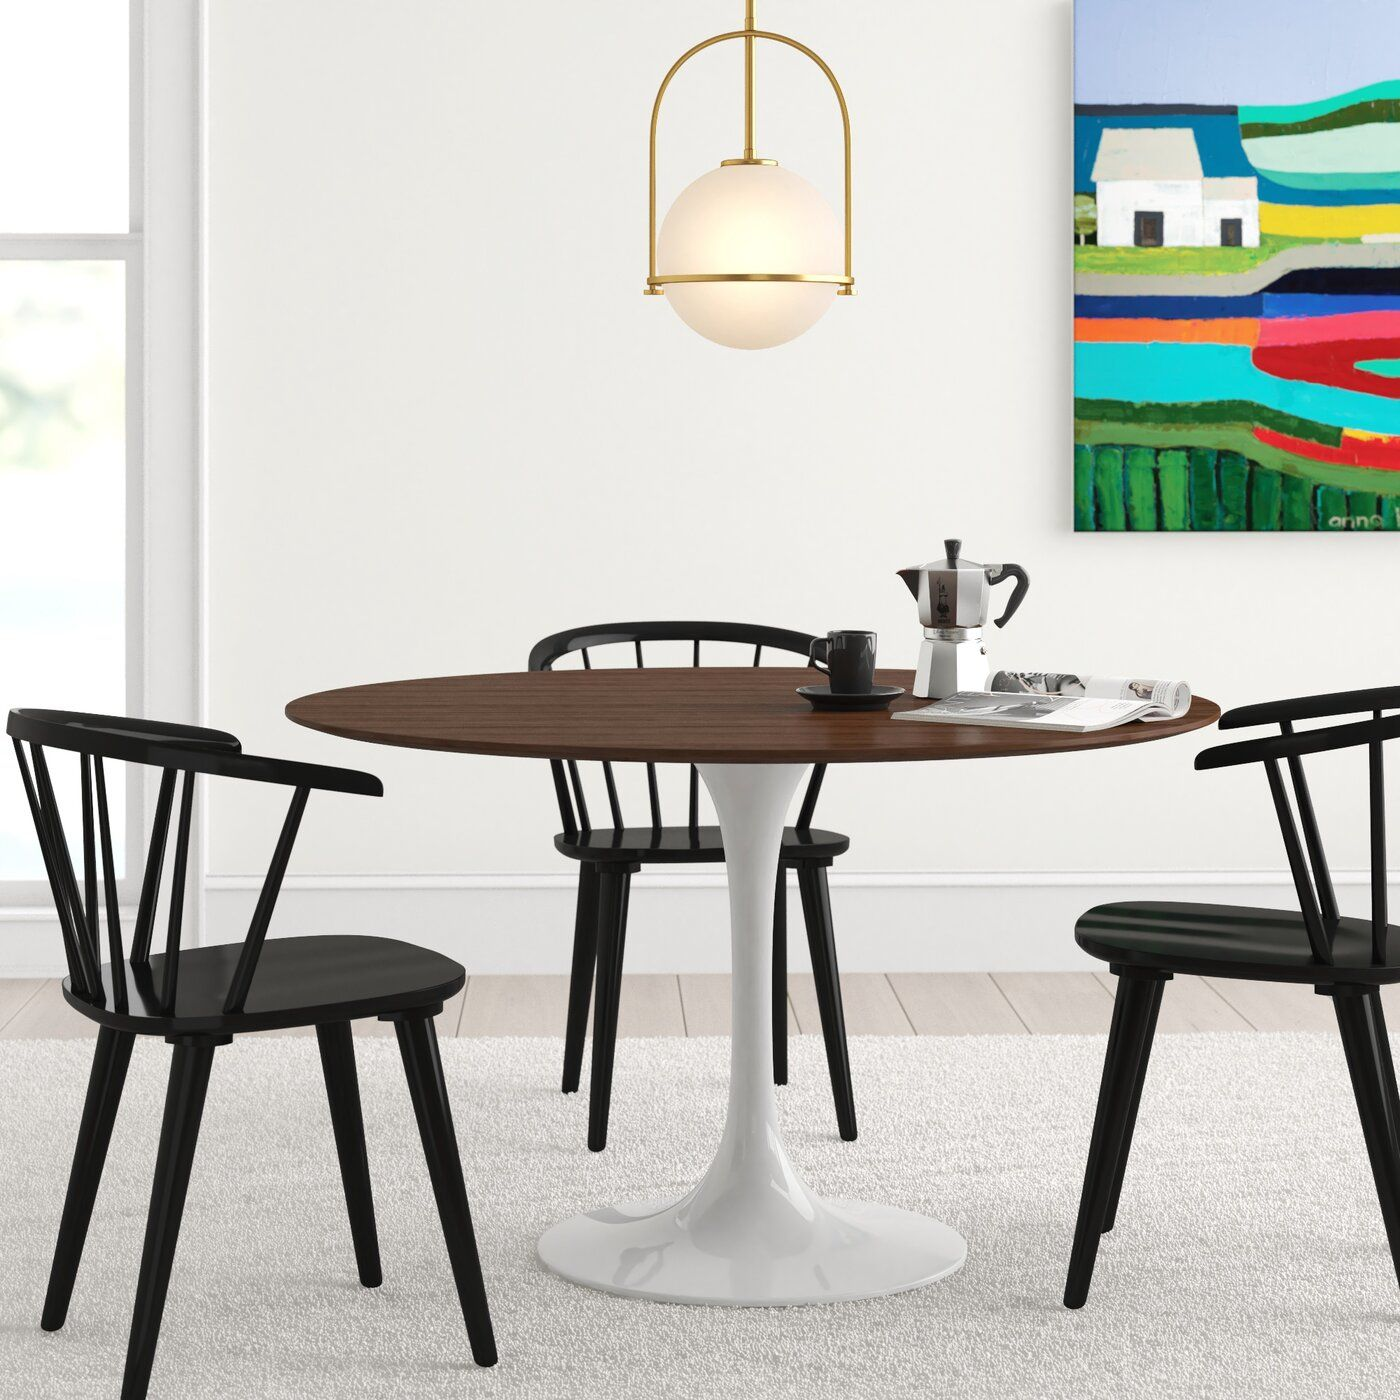 Angelica Wood Top Dining Table Reviews Allmodern Dining Table Contemporary Dining Table Dining Table Sizes